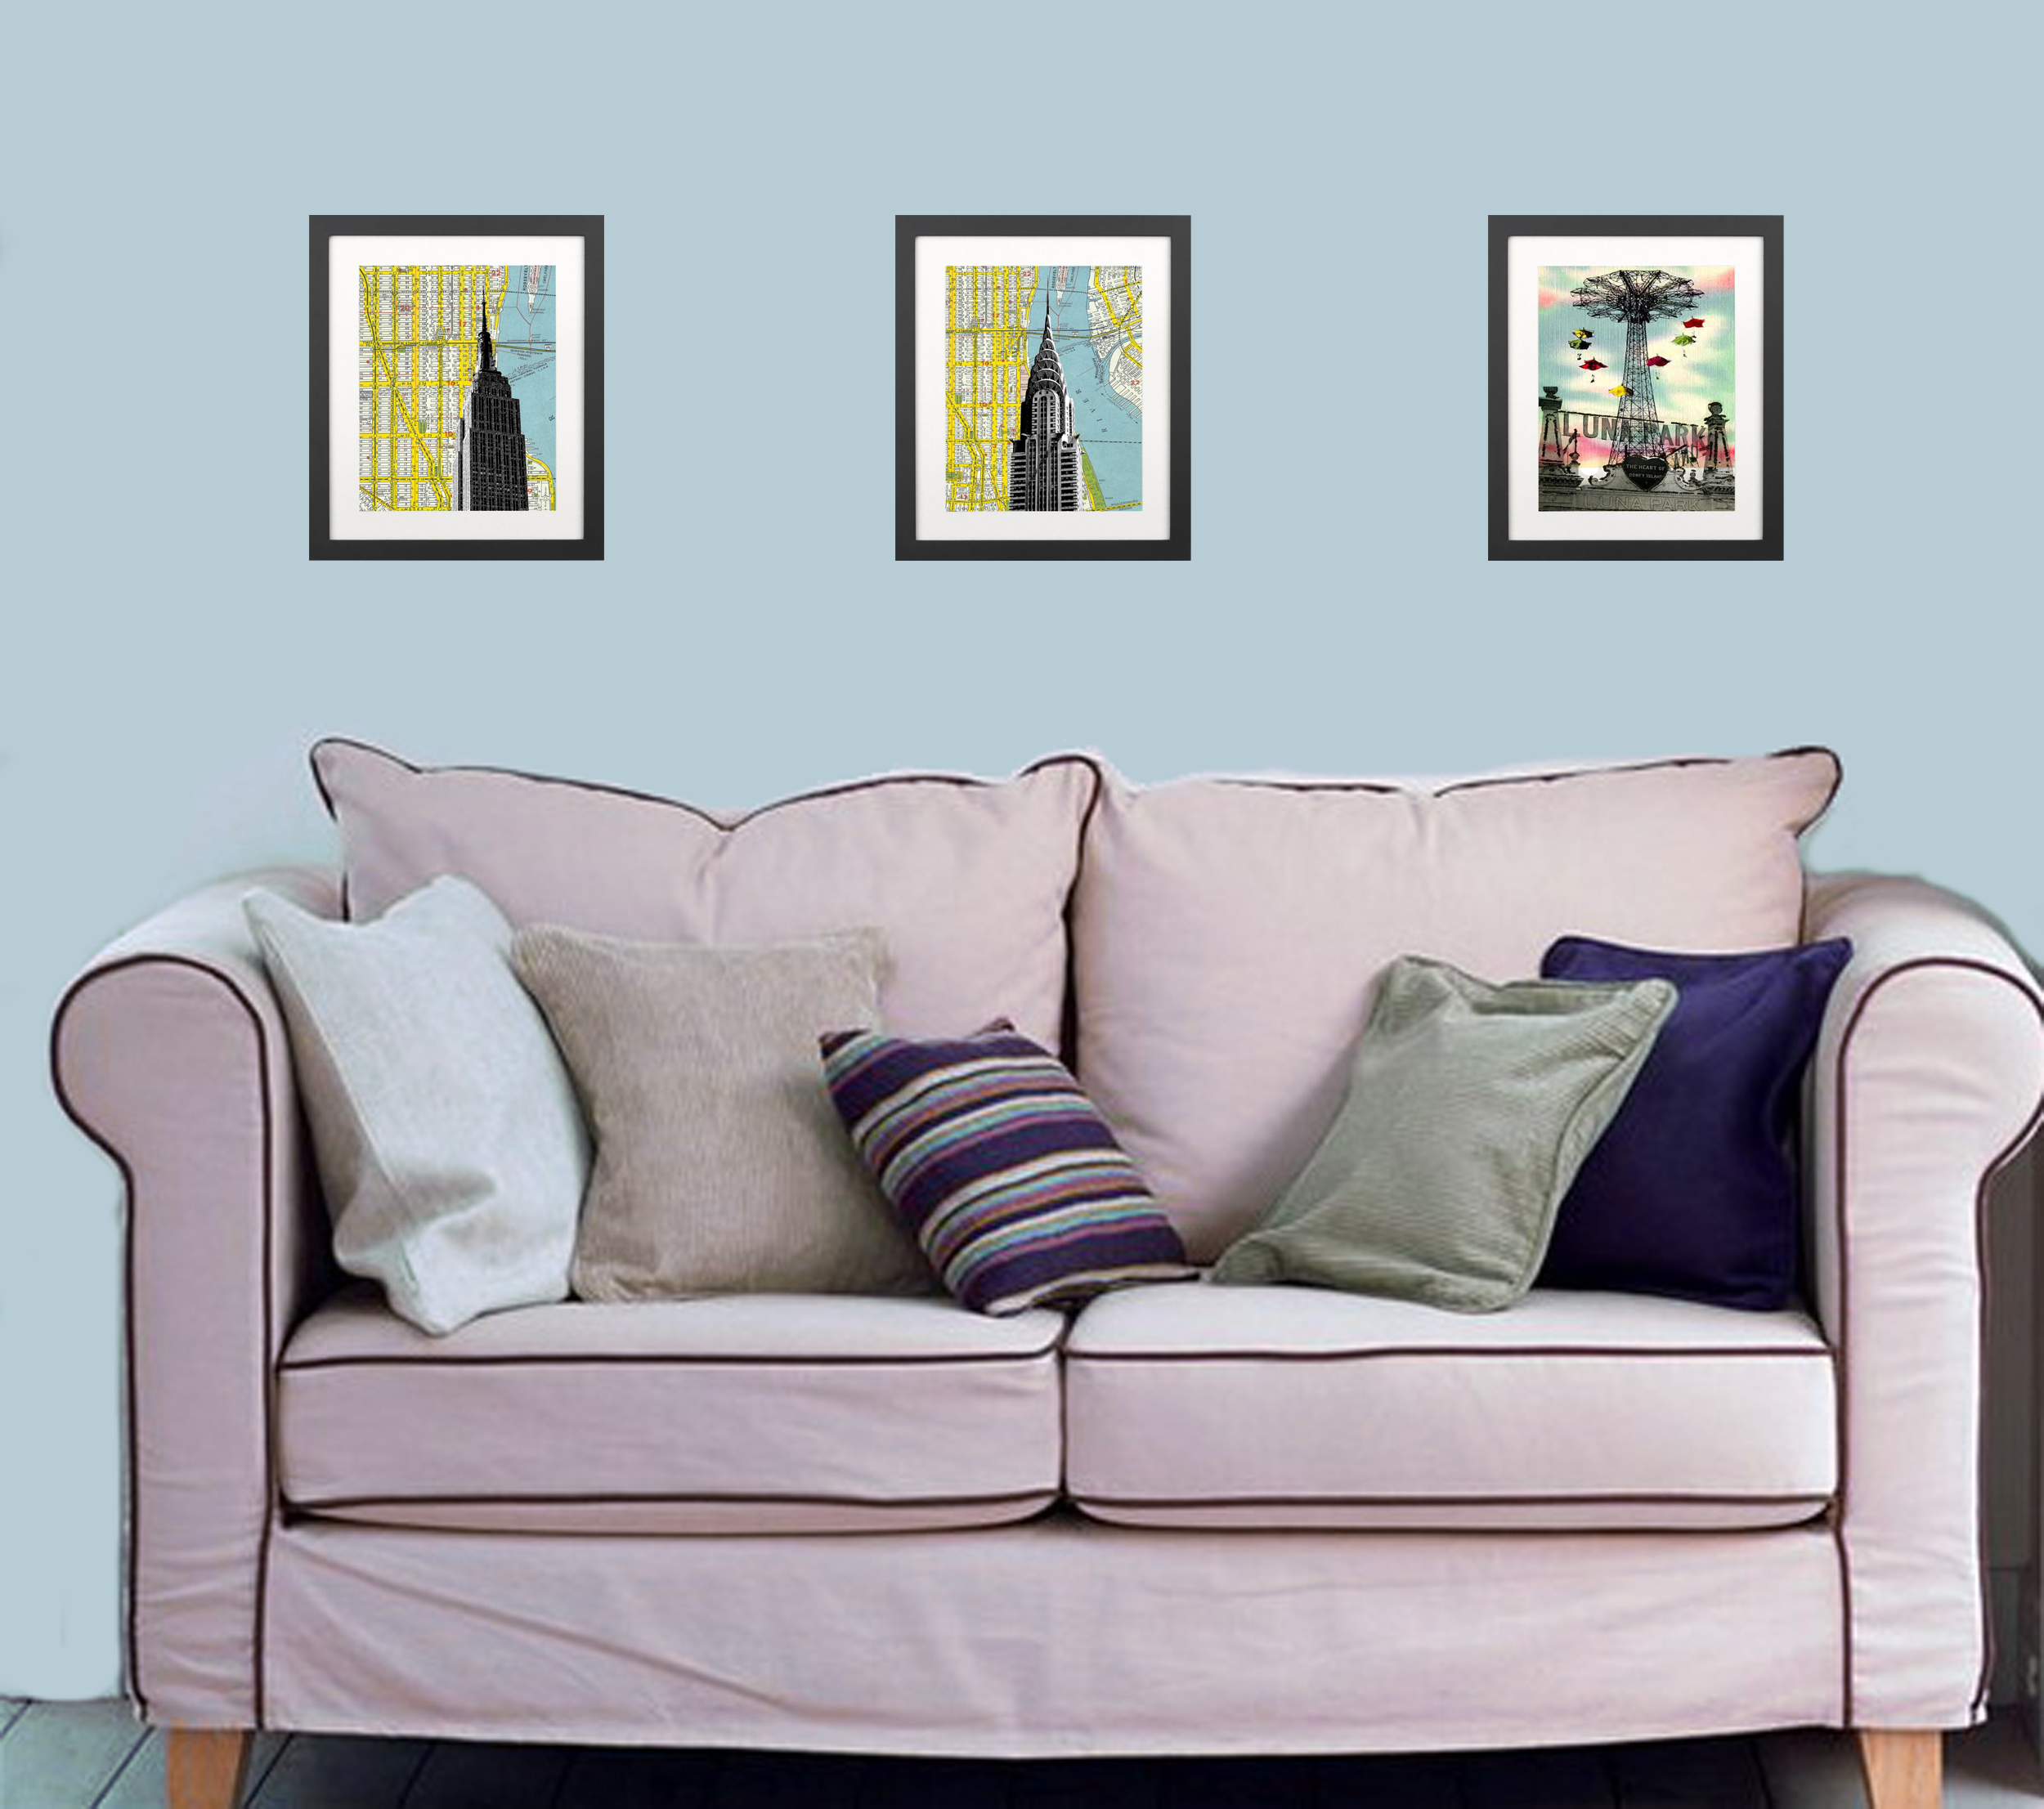 Home Decor Stores New York: Empire State Building -New York City Manhattan Home Decor